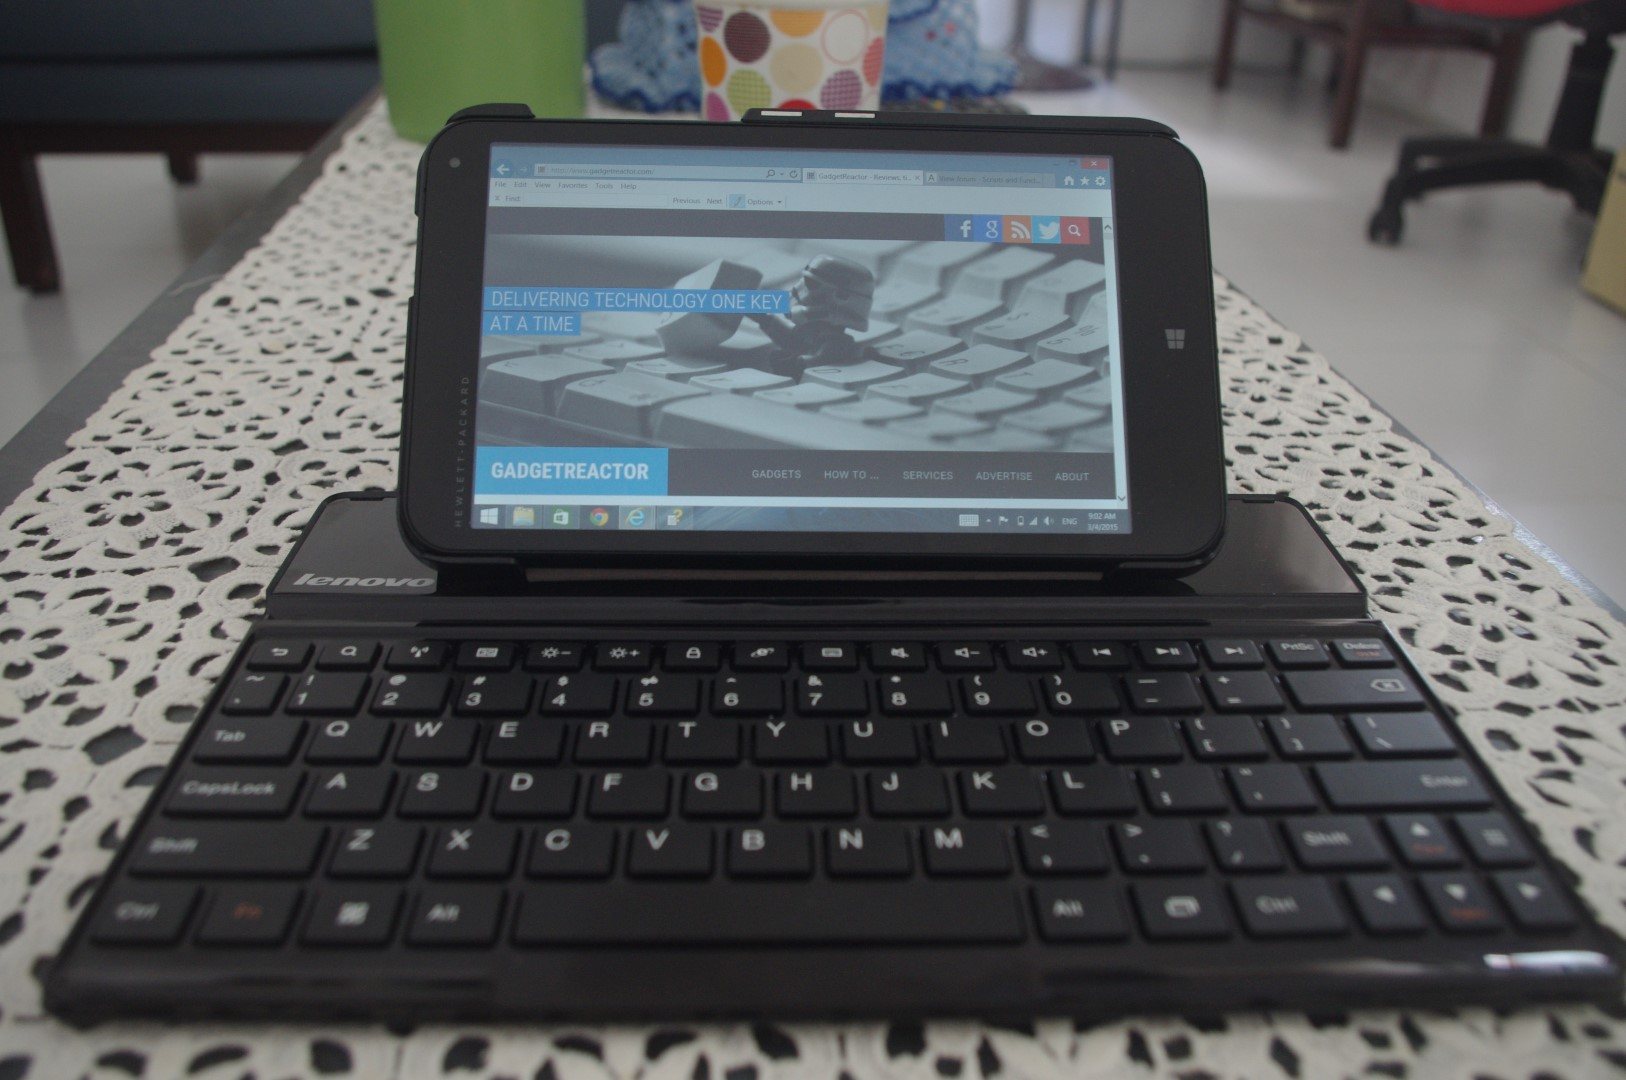 Review: Lenovo S6000 Bluetooth Keyboard – GadgetReactor